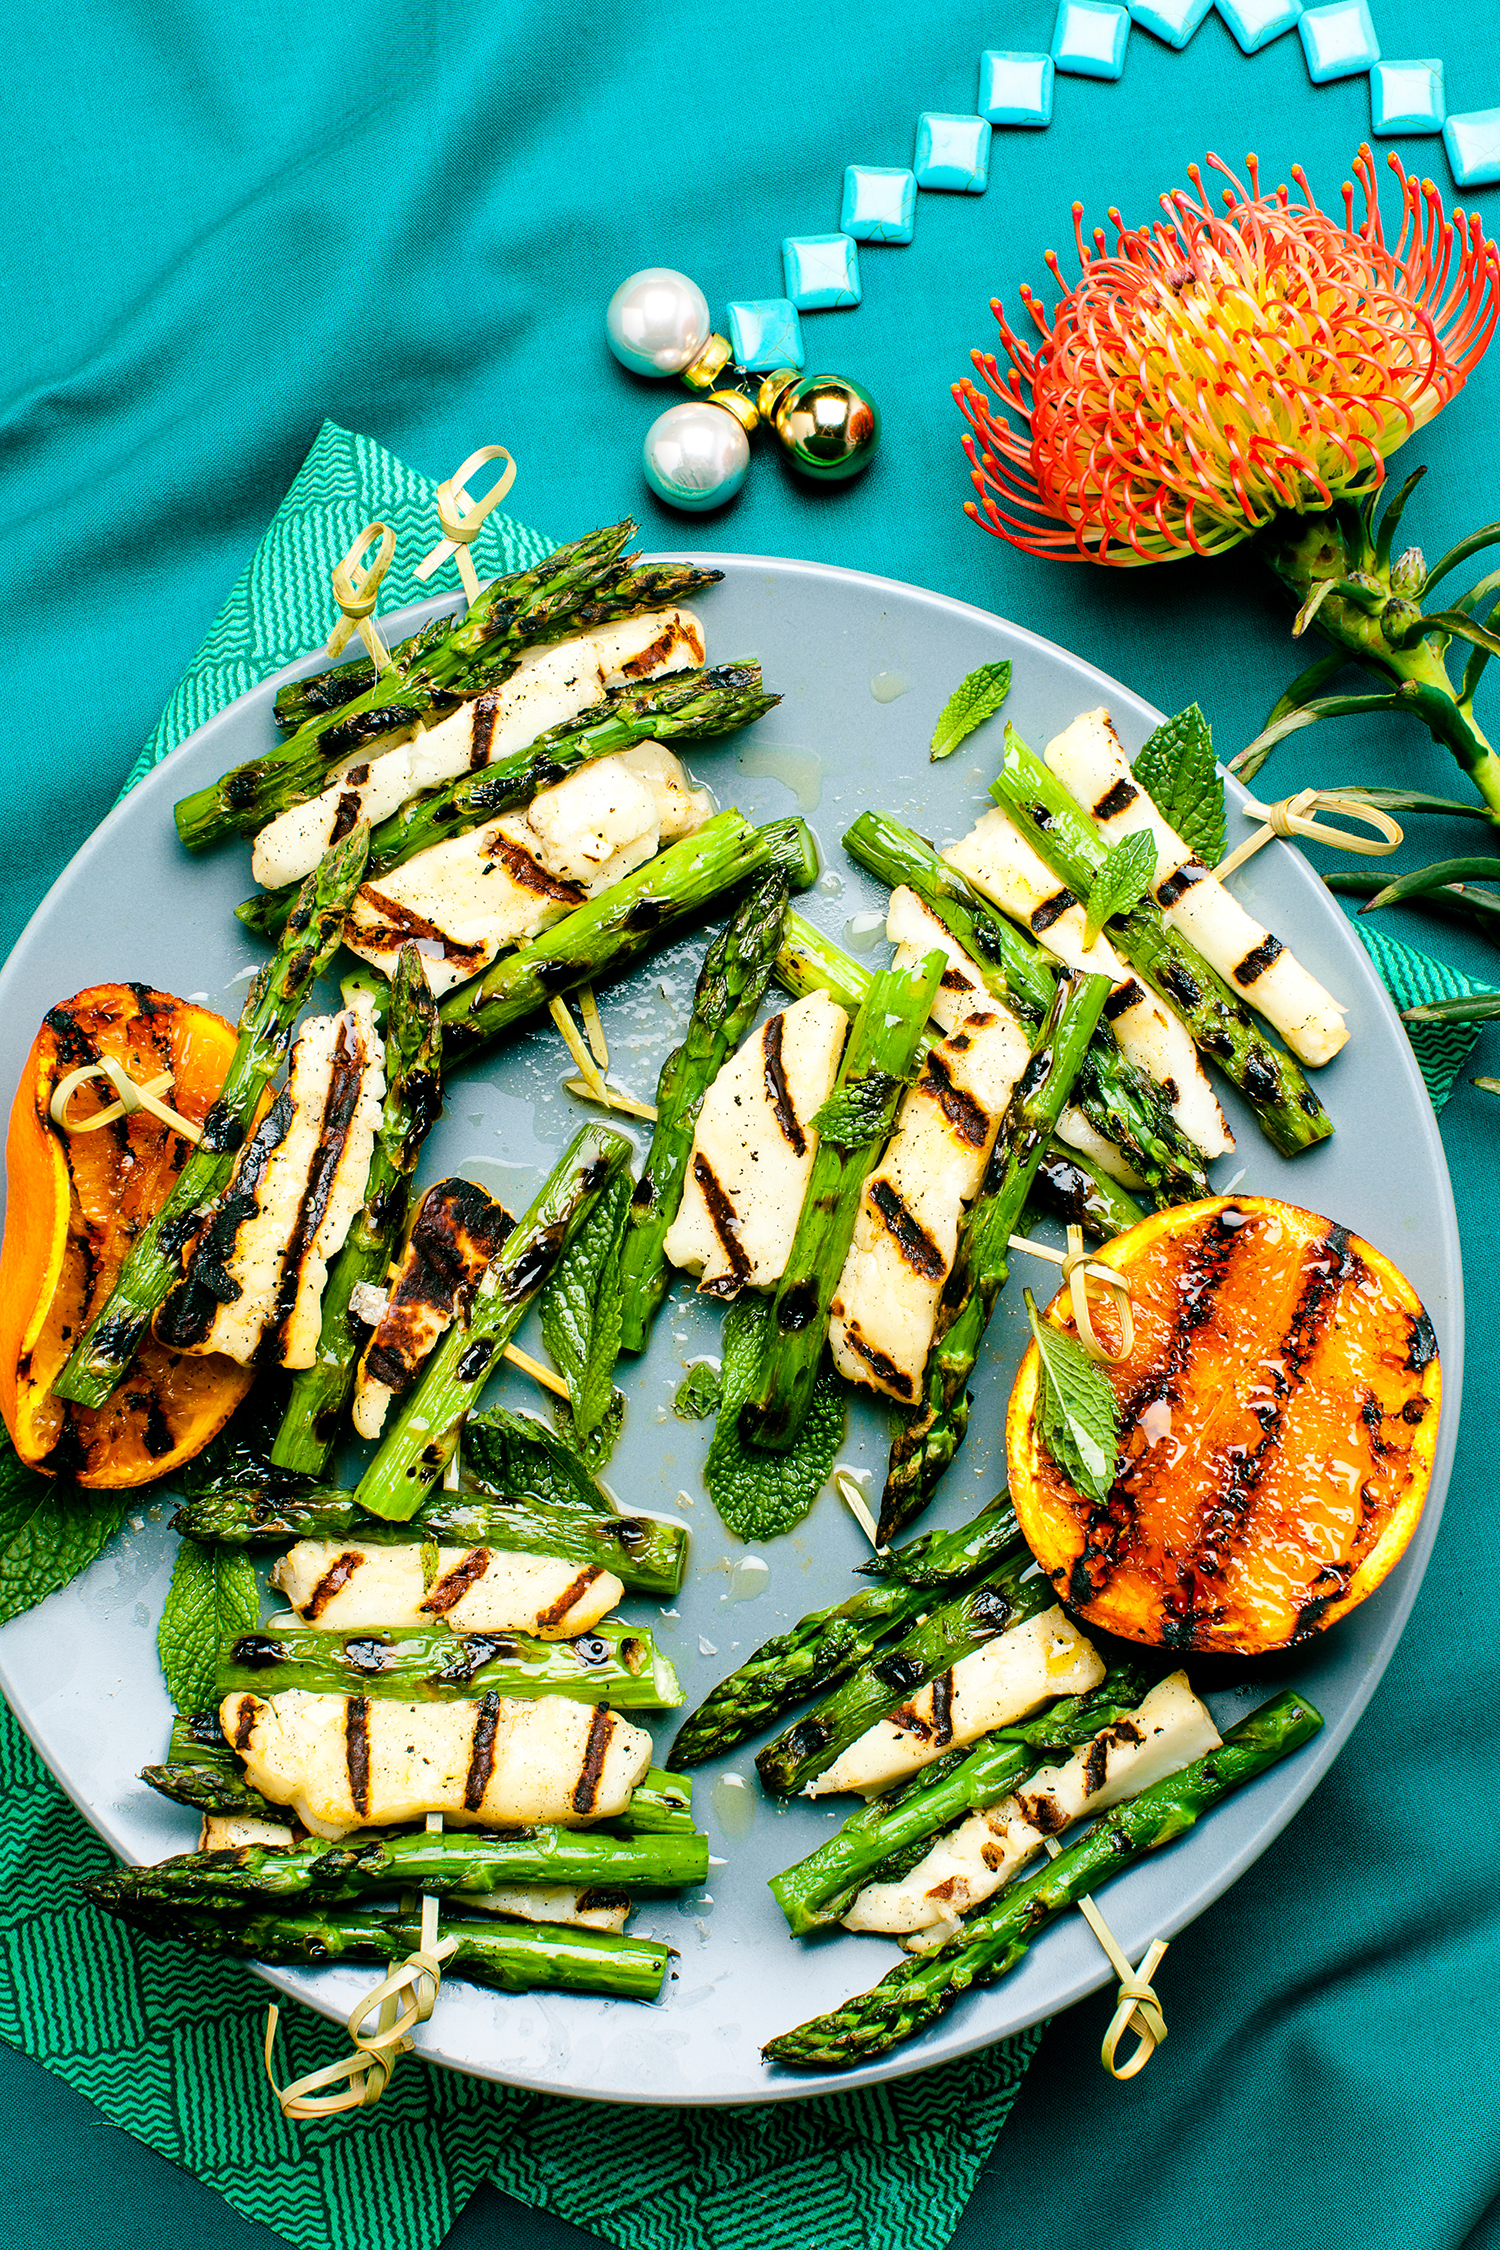 Grilled Haloumi and Asparagus with Orange & Mint ,   appeared originally in   Yum. Gluten Free Magazine   Dec Issue.   Recipe and styling by   Cle-ann  , photo by   Hugh Adams  .